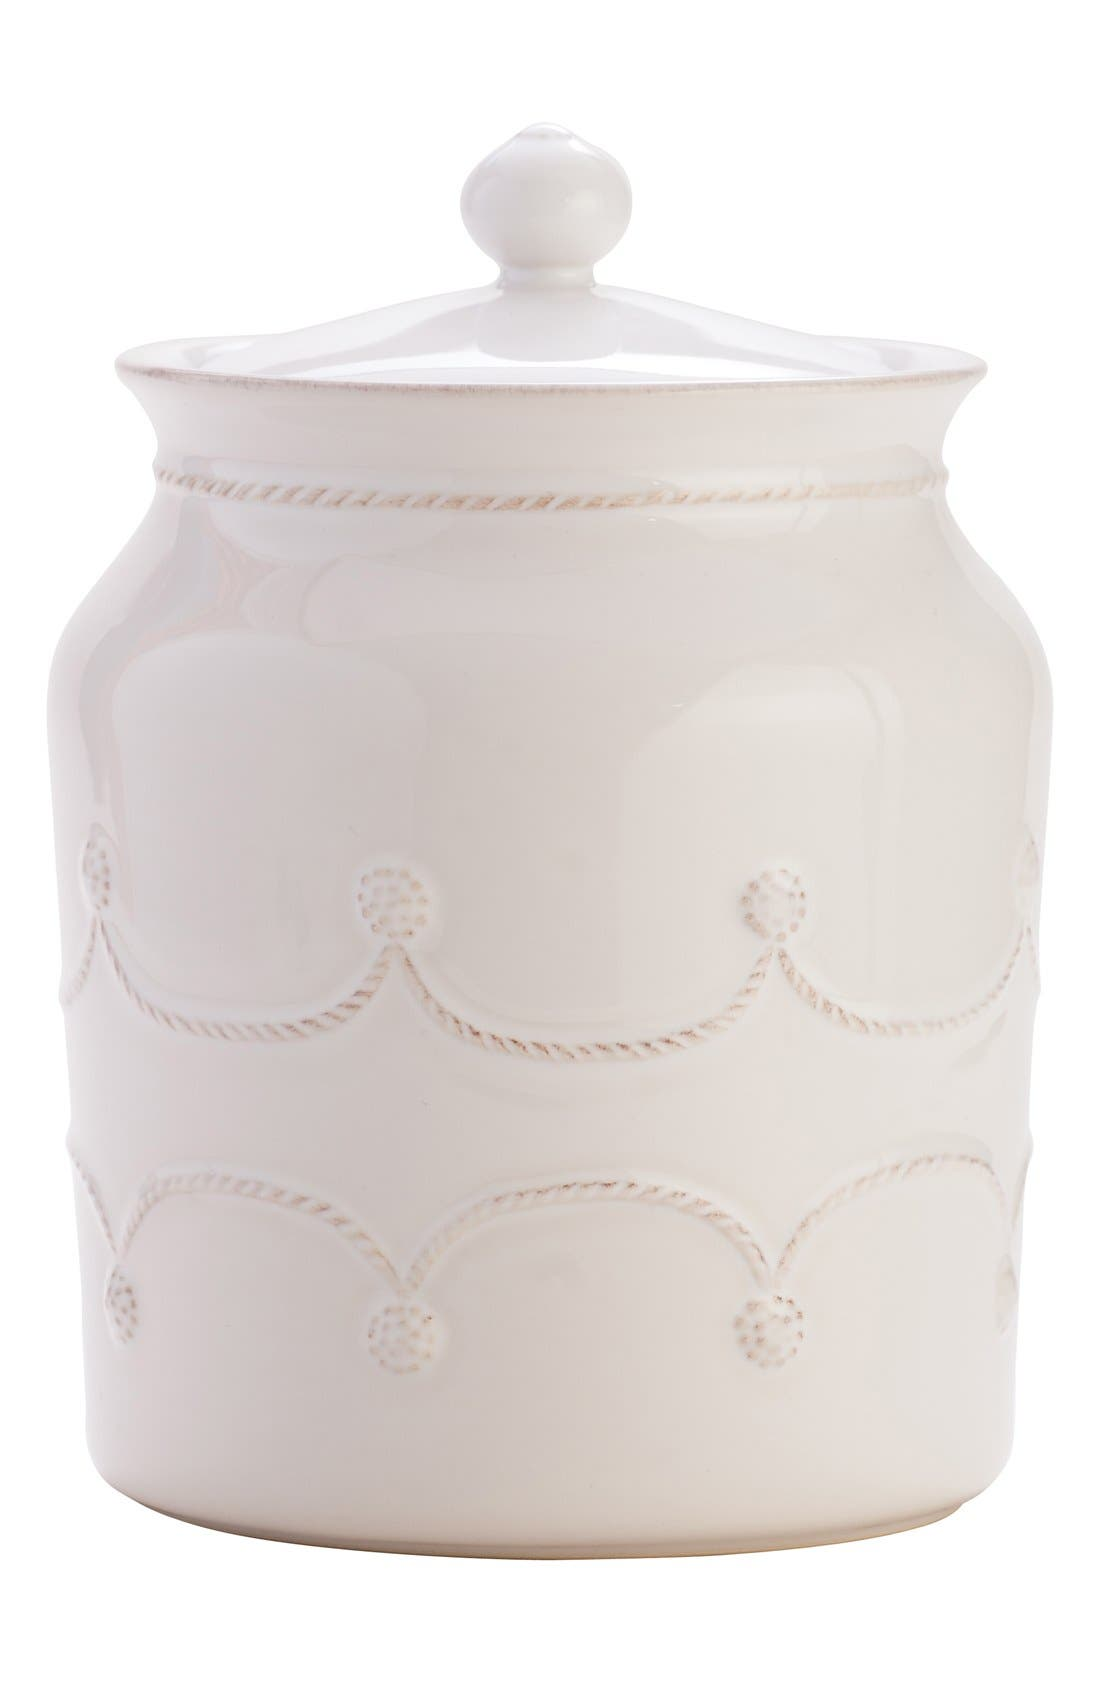 'Berry and Thread' Ceramic Cookie Jar,                         Main,                         color, Whitewash